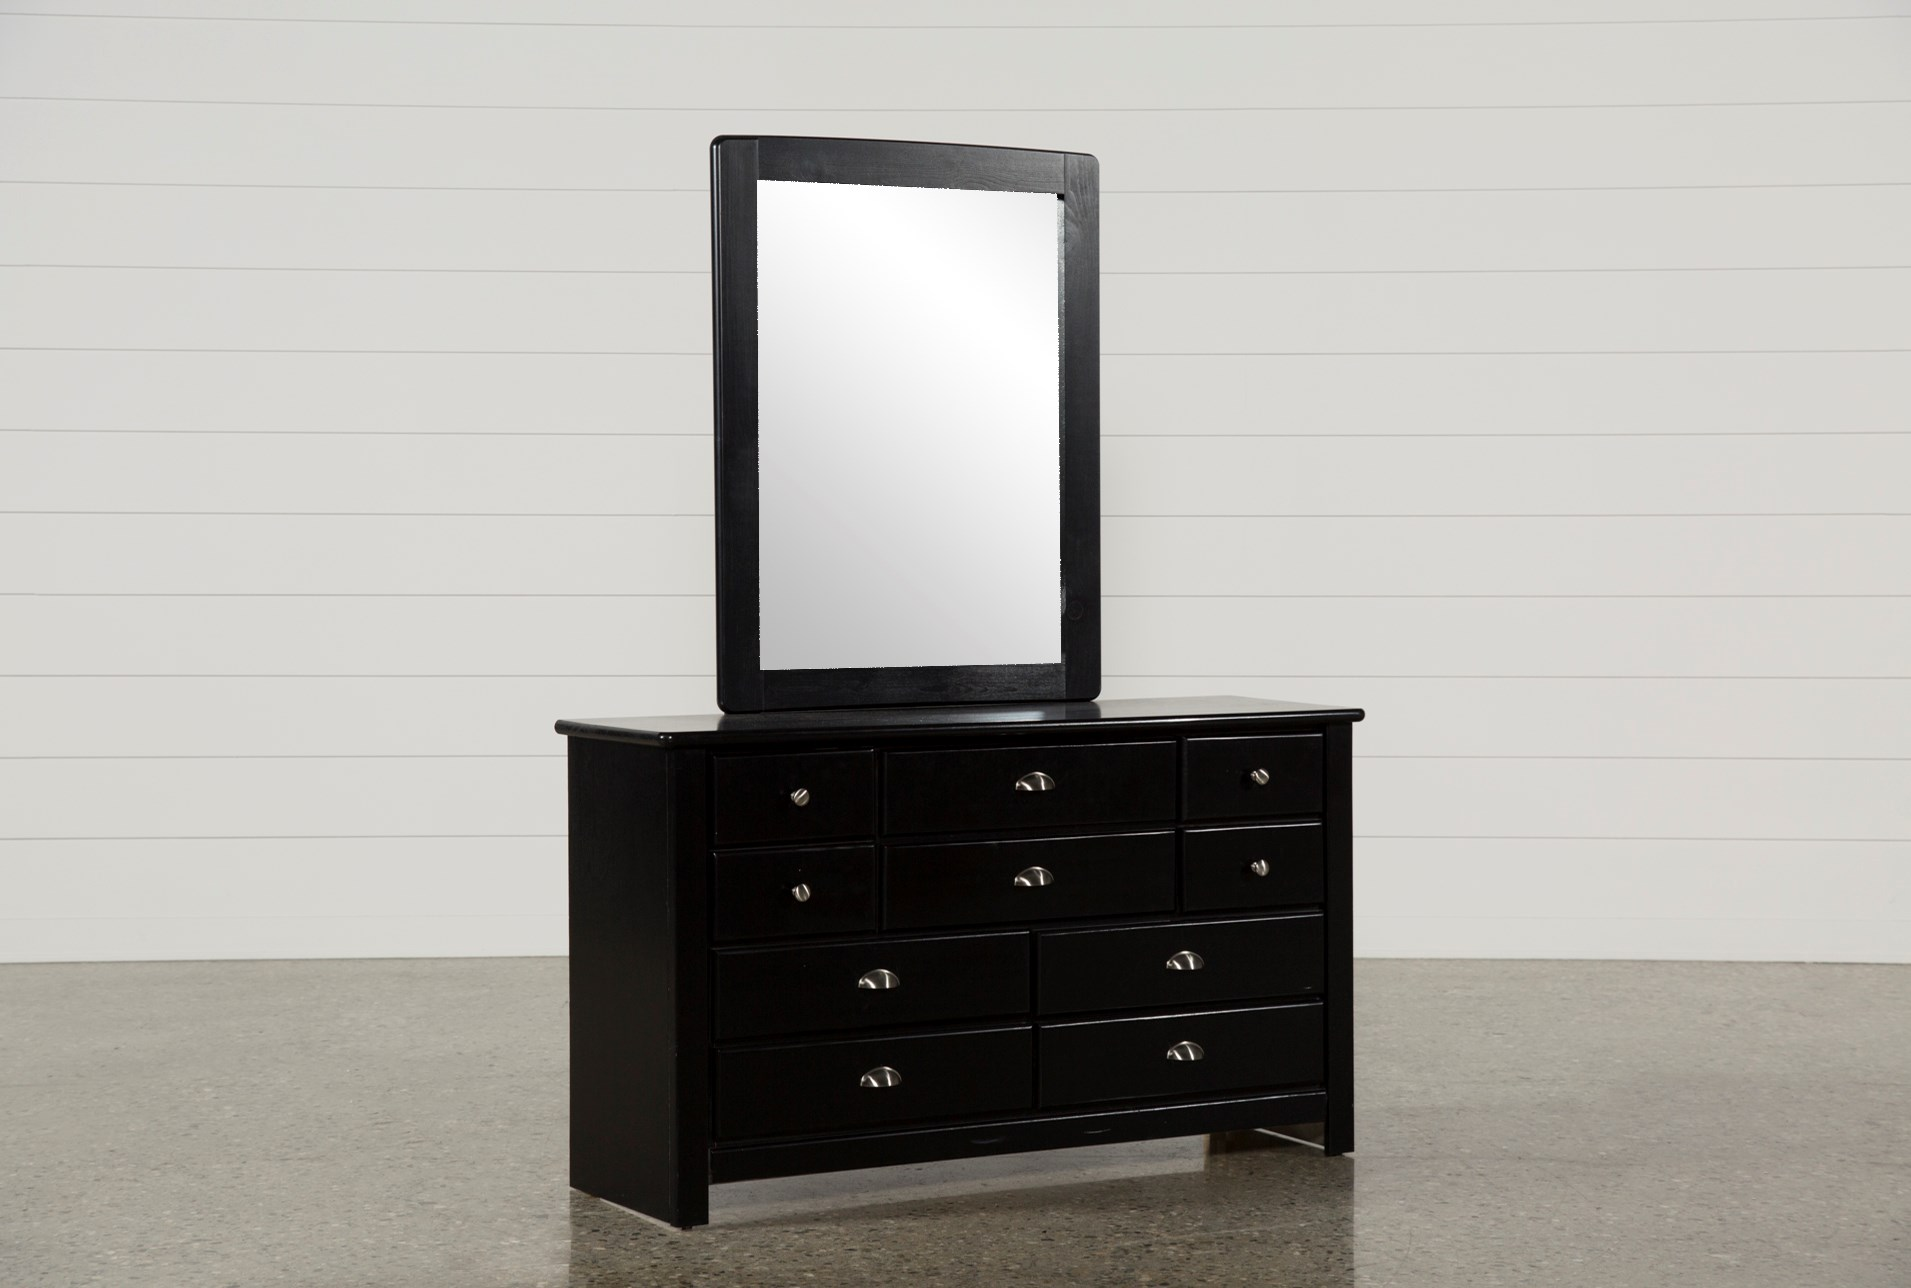 Summit Black Dresser Mirror Qty 1 Has Been Successfully Added To Your Cart